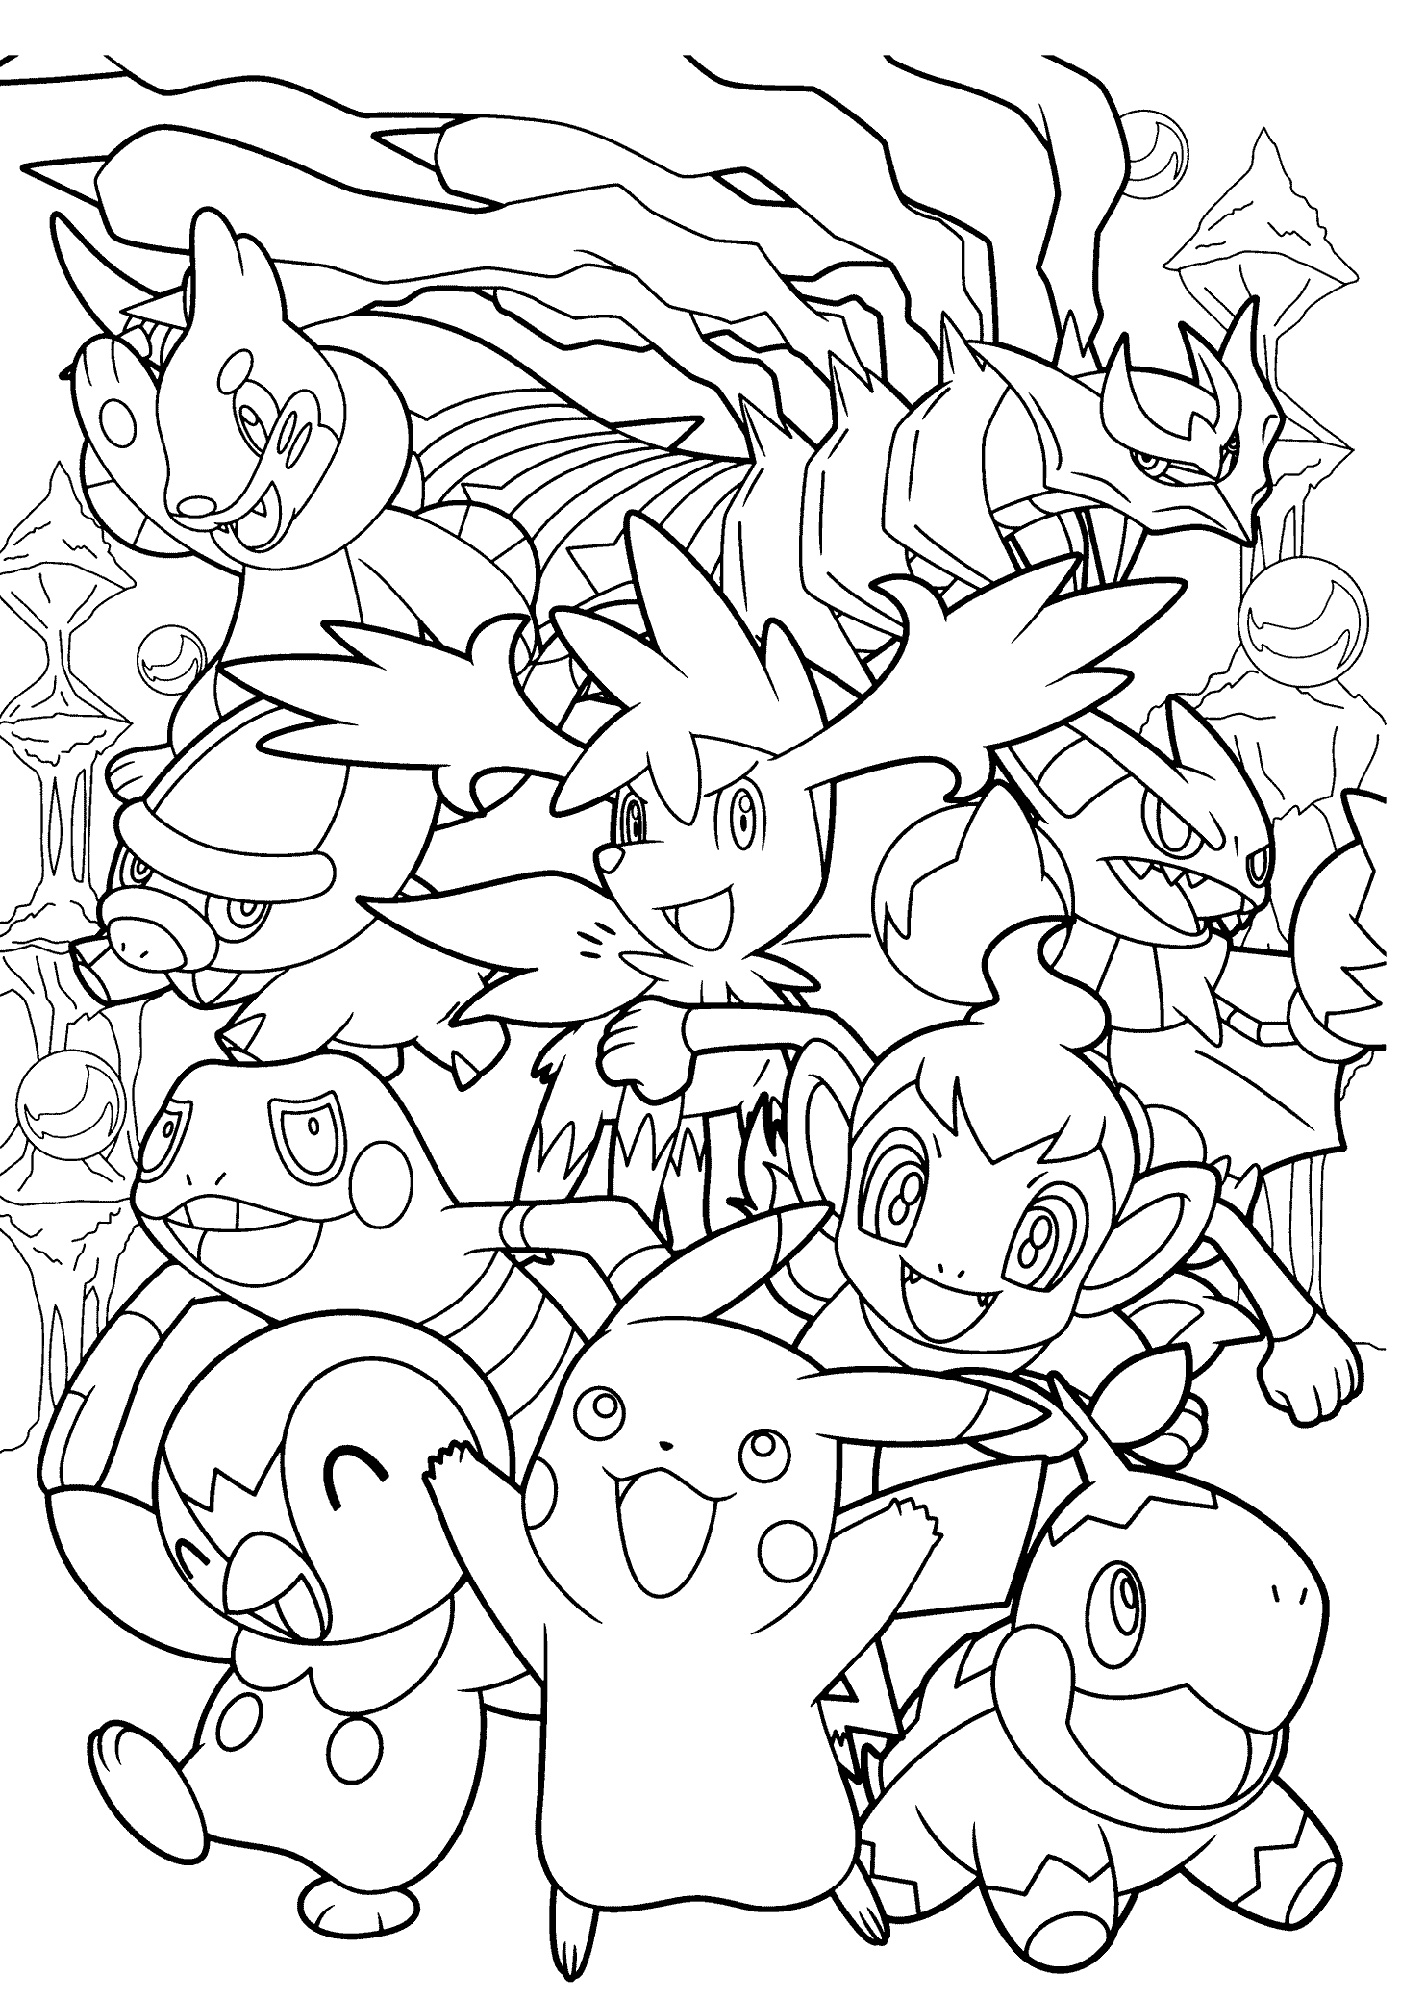 All-Pokemon-Coloring-Games